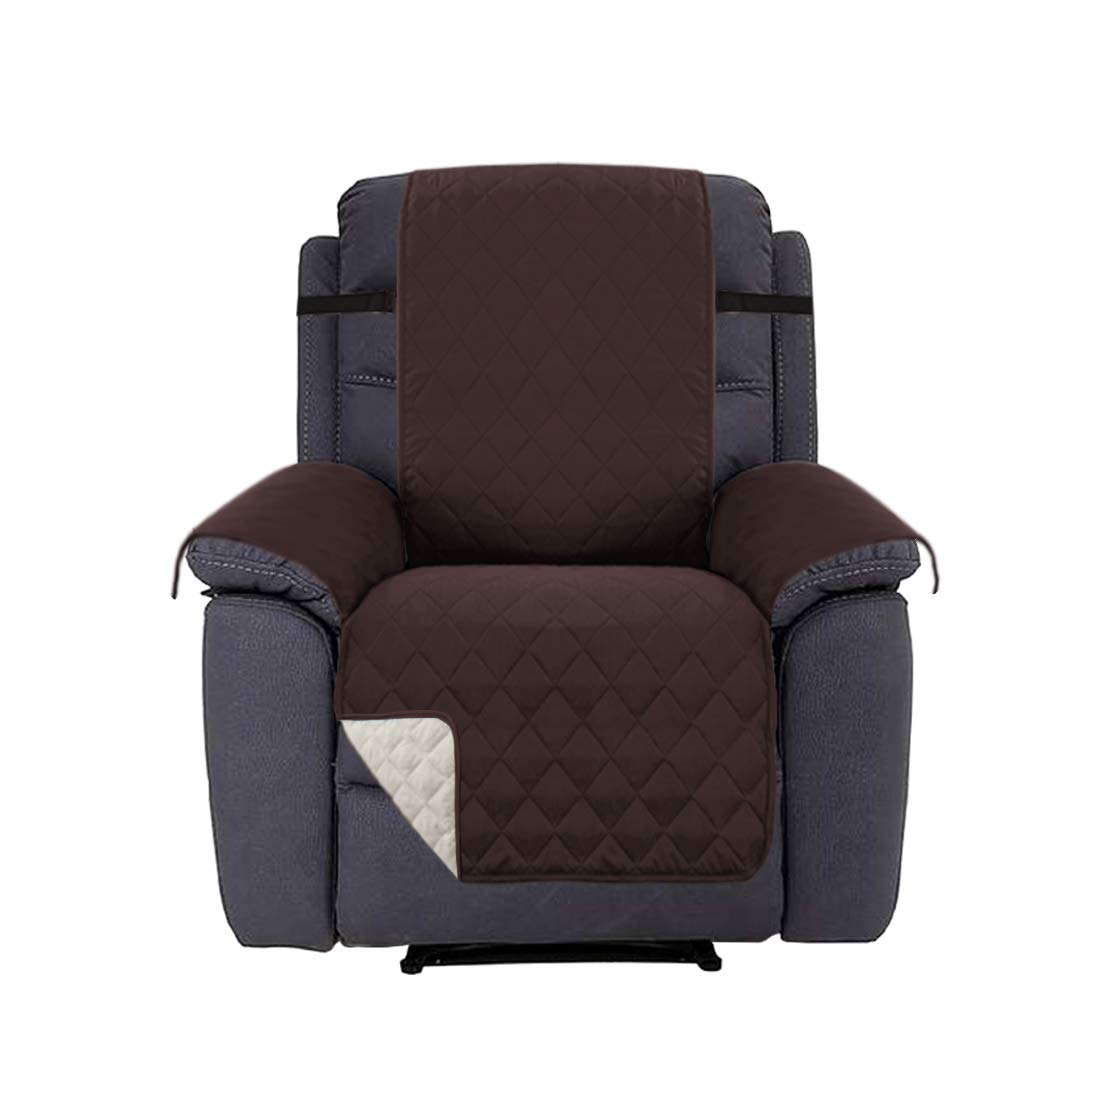 H.VERSAILTEX Recliner Cover Recliner Slipcover Recliner Protector for Pets, Reversible and Thick, 2'' Elastic Straps, Diamond Stitches Pattern, Cotton Like Quilted (Recliner Brown/Beige)